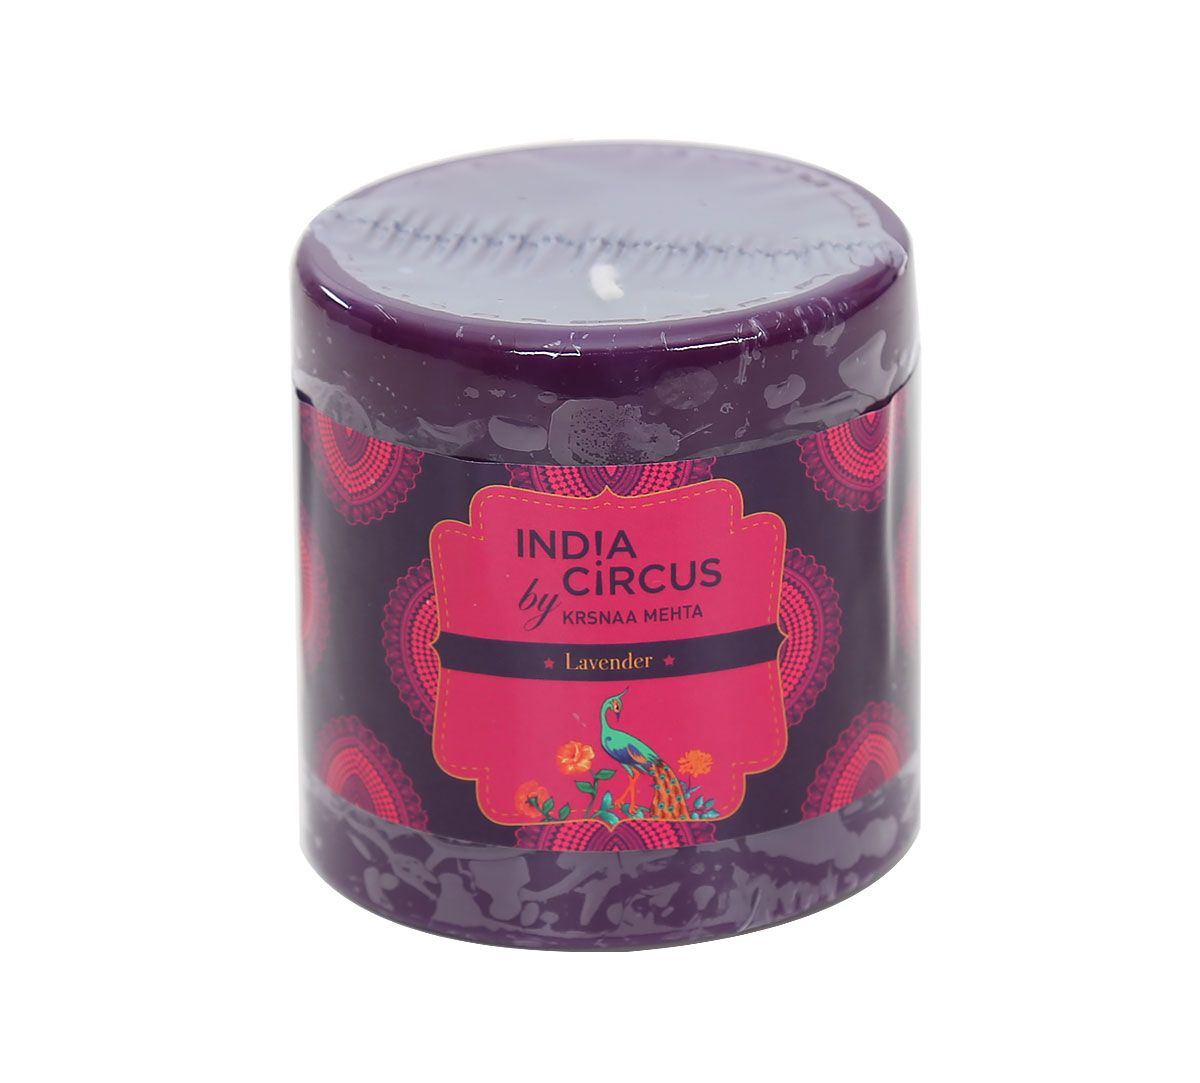 India Circus Lavender Drum Candle